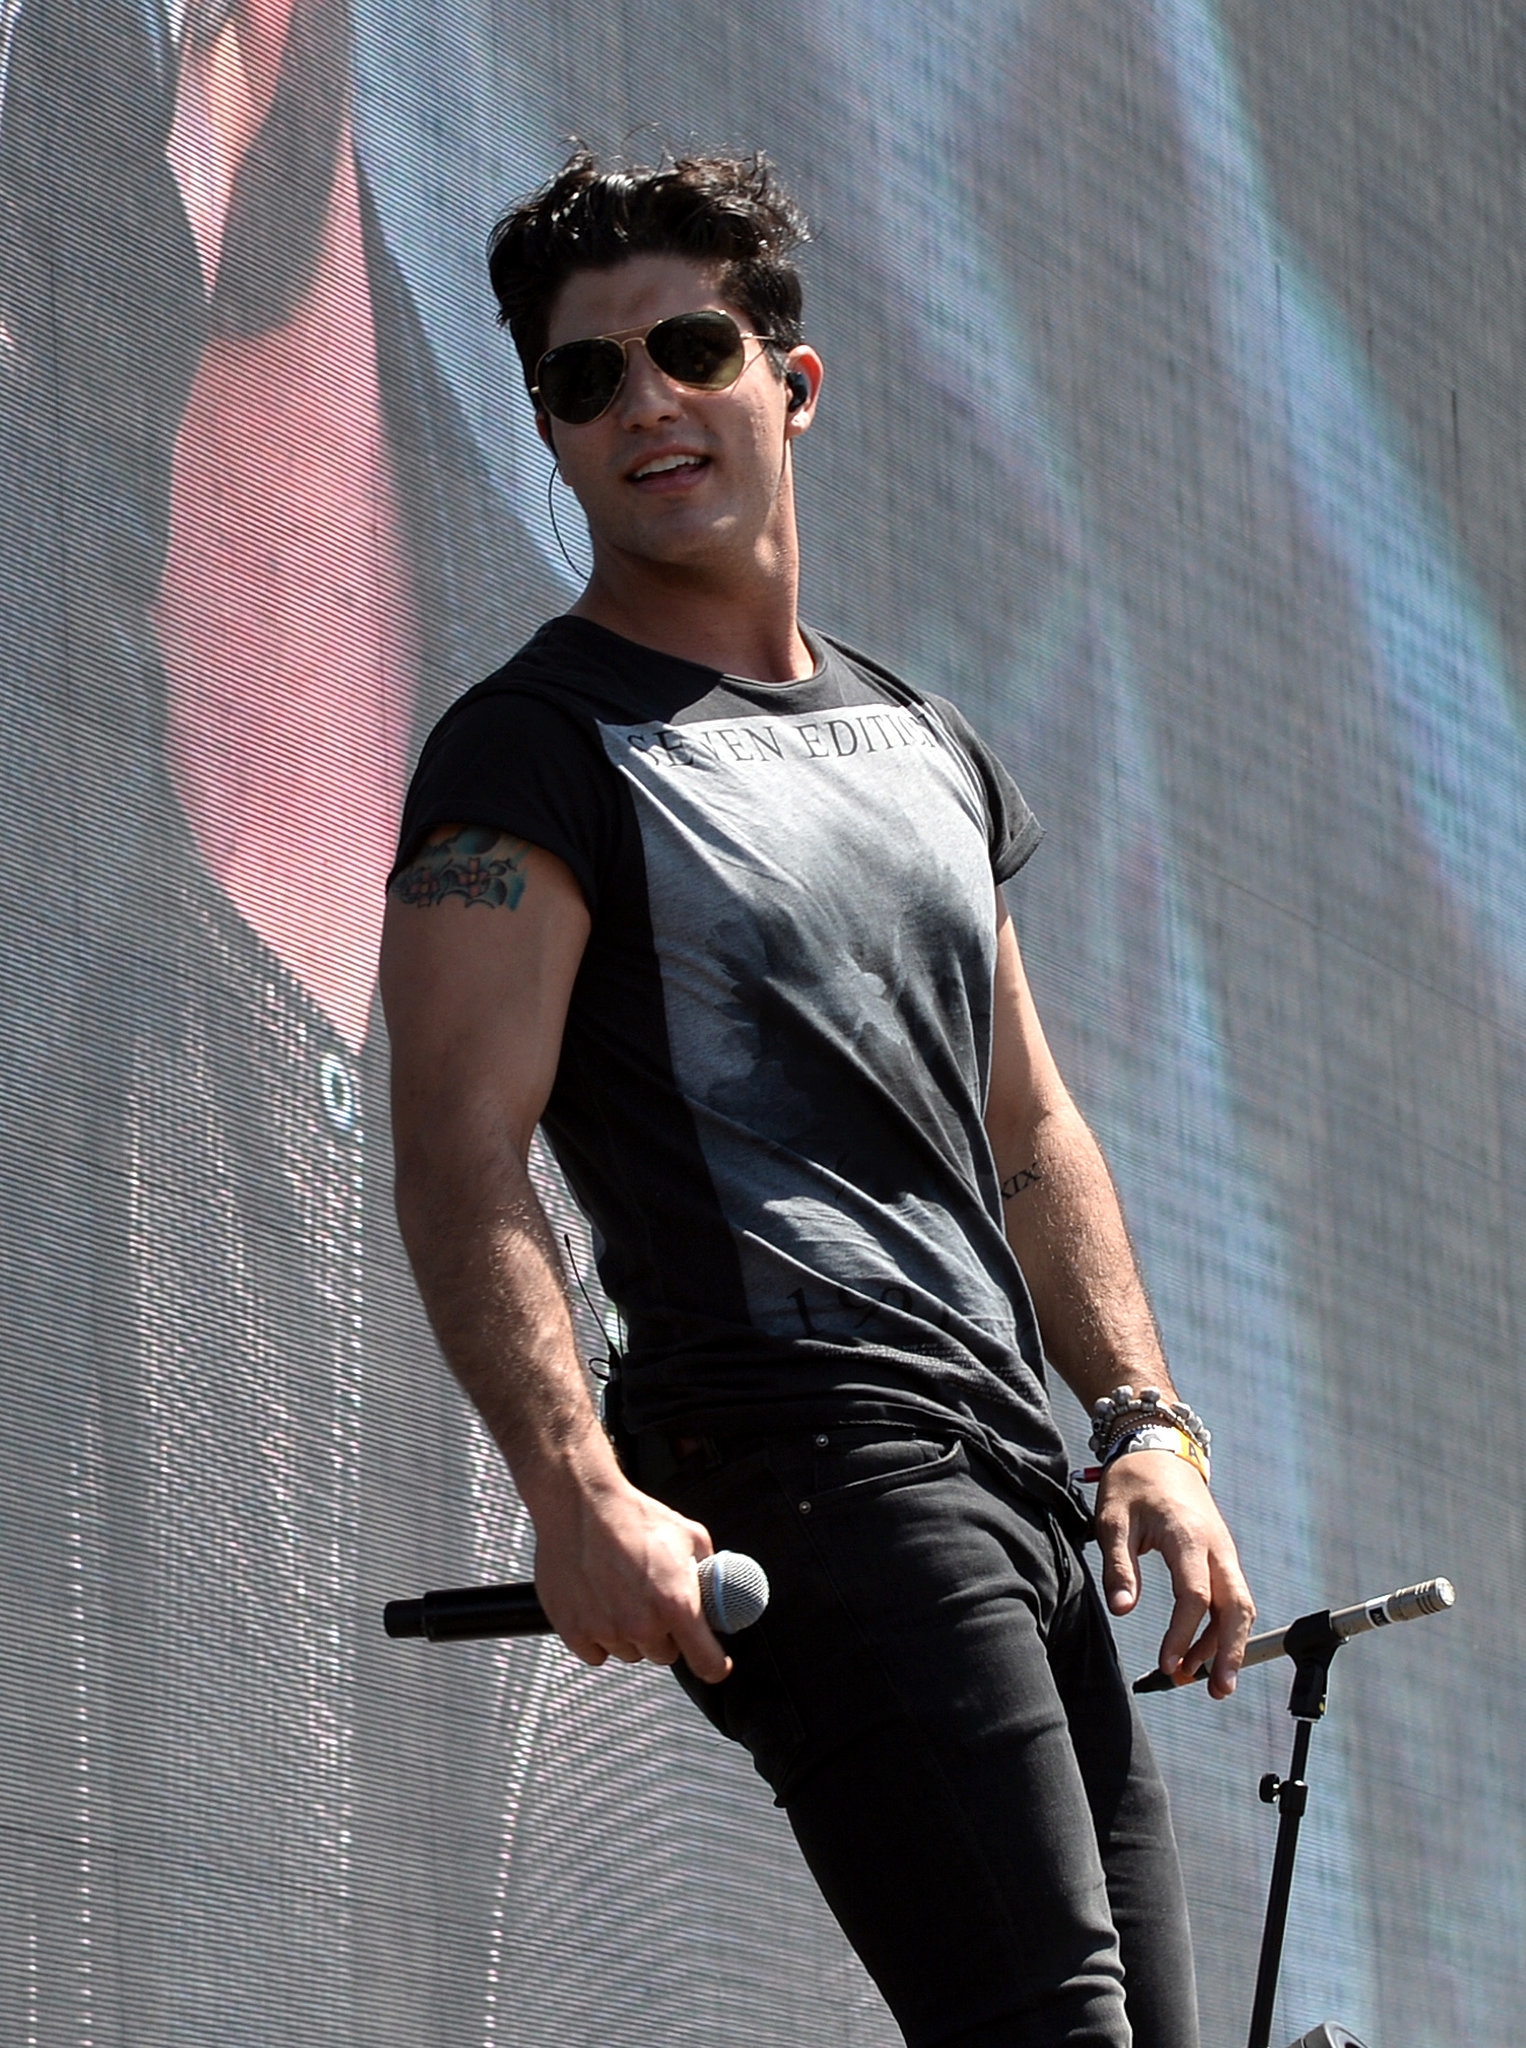 And Dan Smyers has a Darren Criss vibe going on.